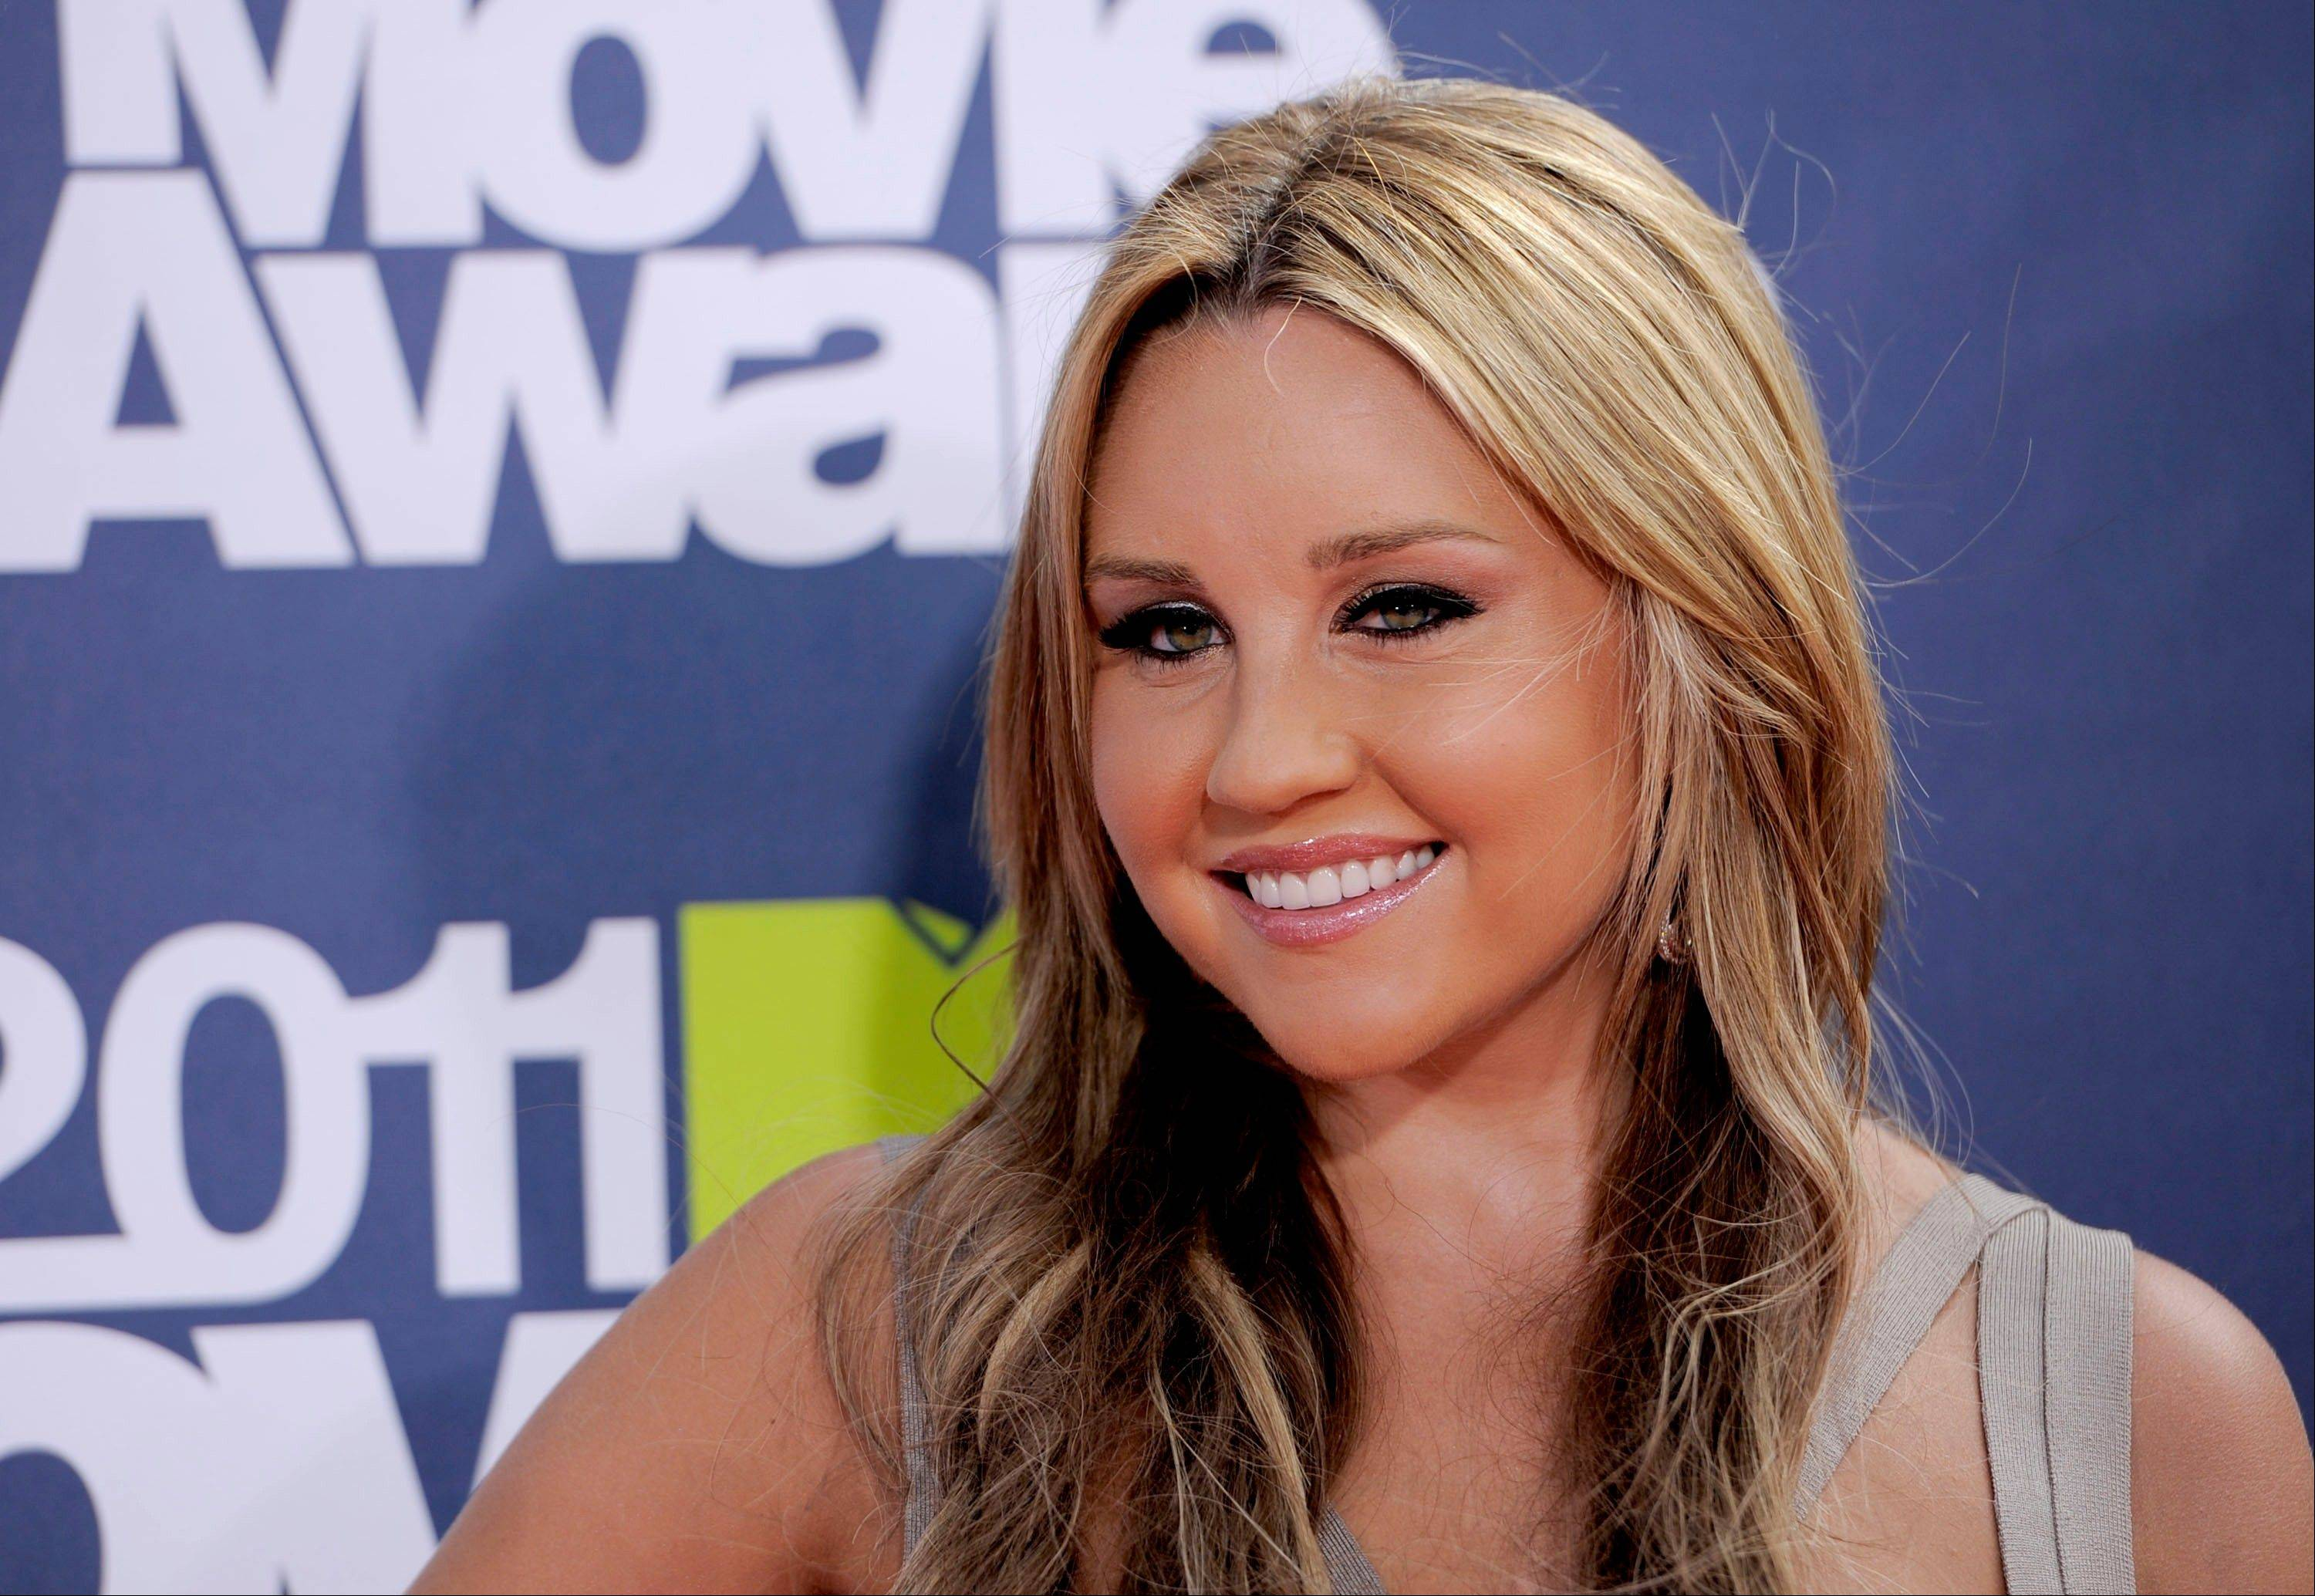 Amanda Bynes is due in court Tuesday on allegations that she tossed a marijuana bong from the window of her 36th floor Manhattan apartment in May.